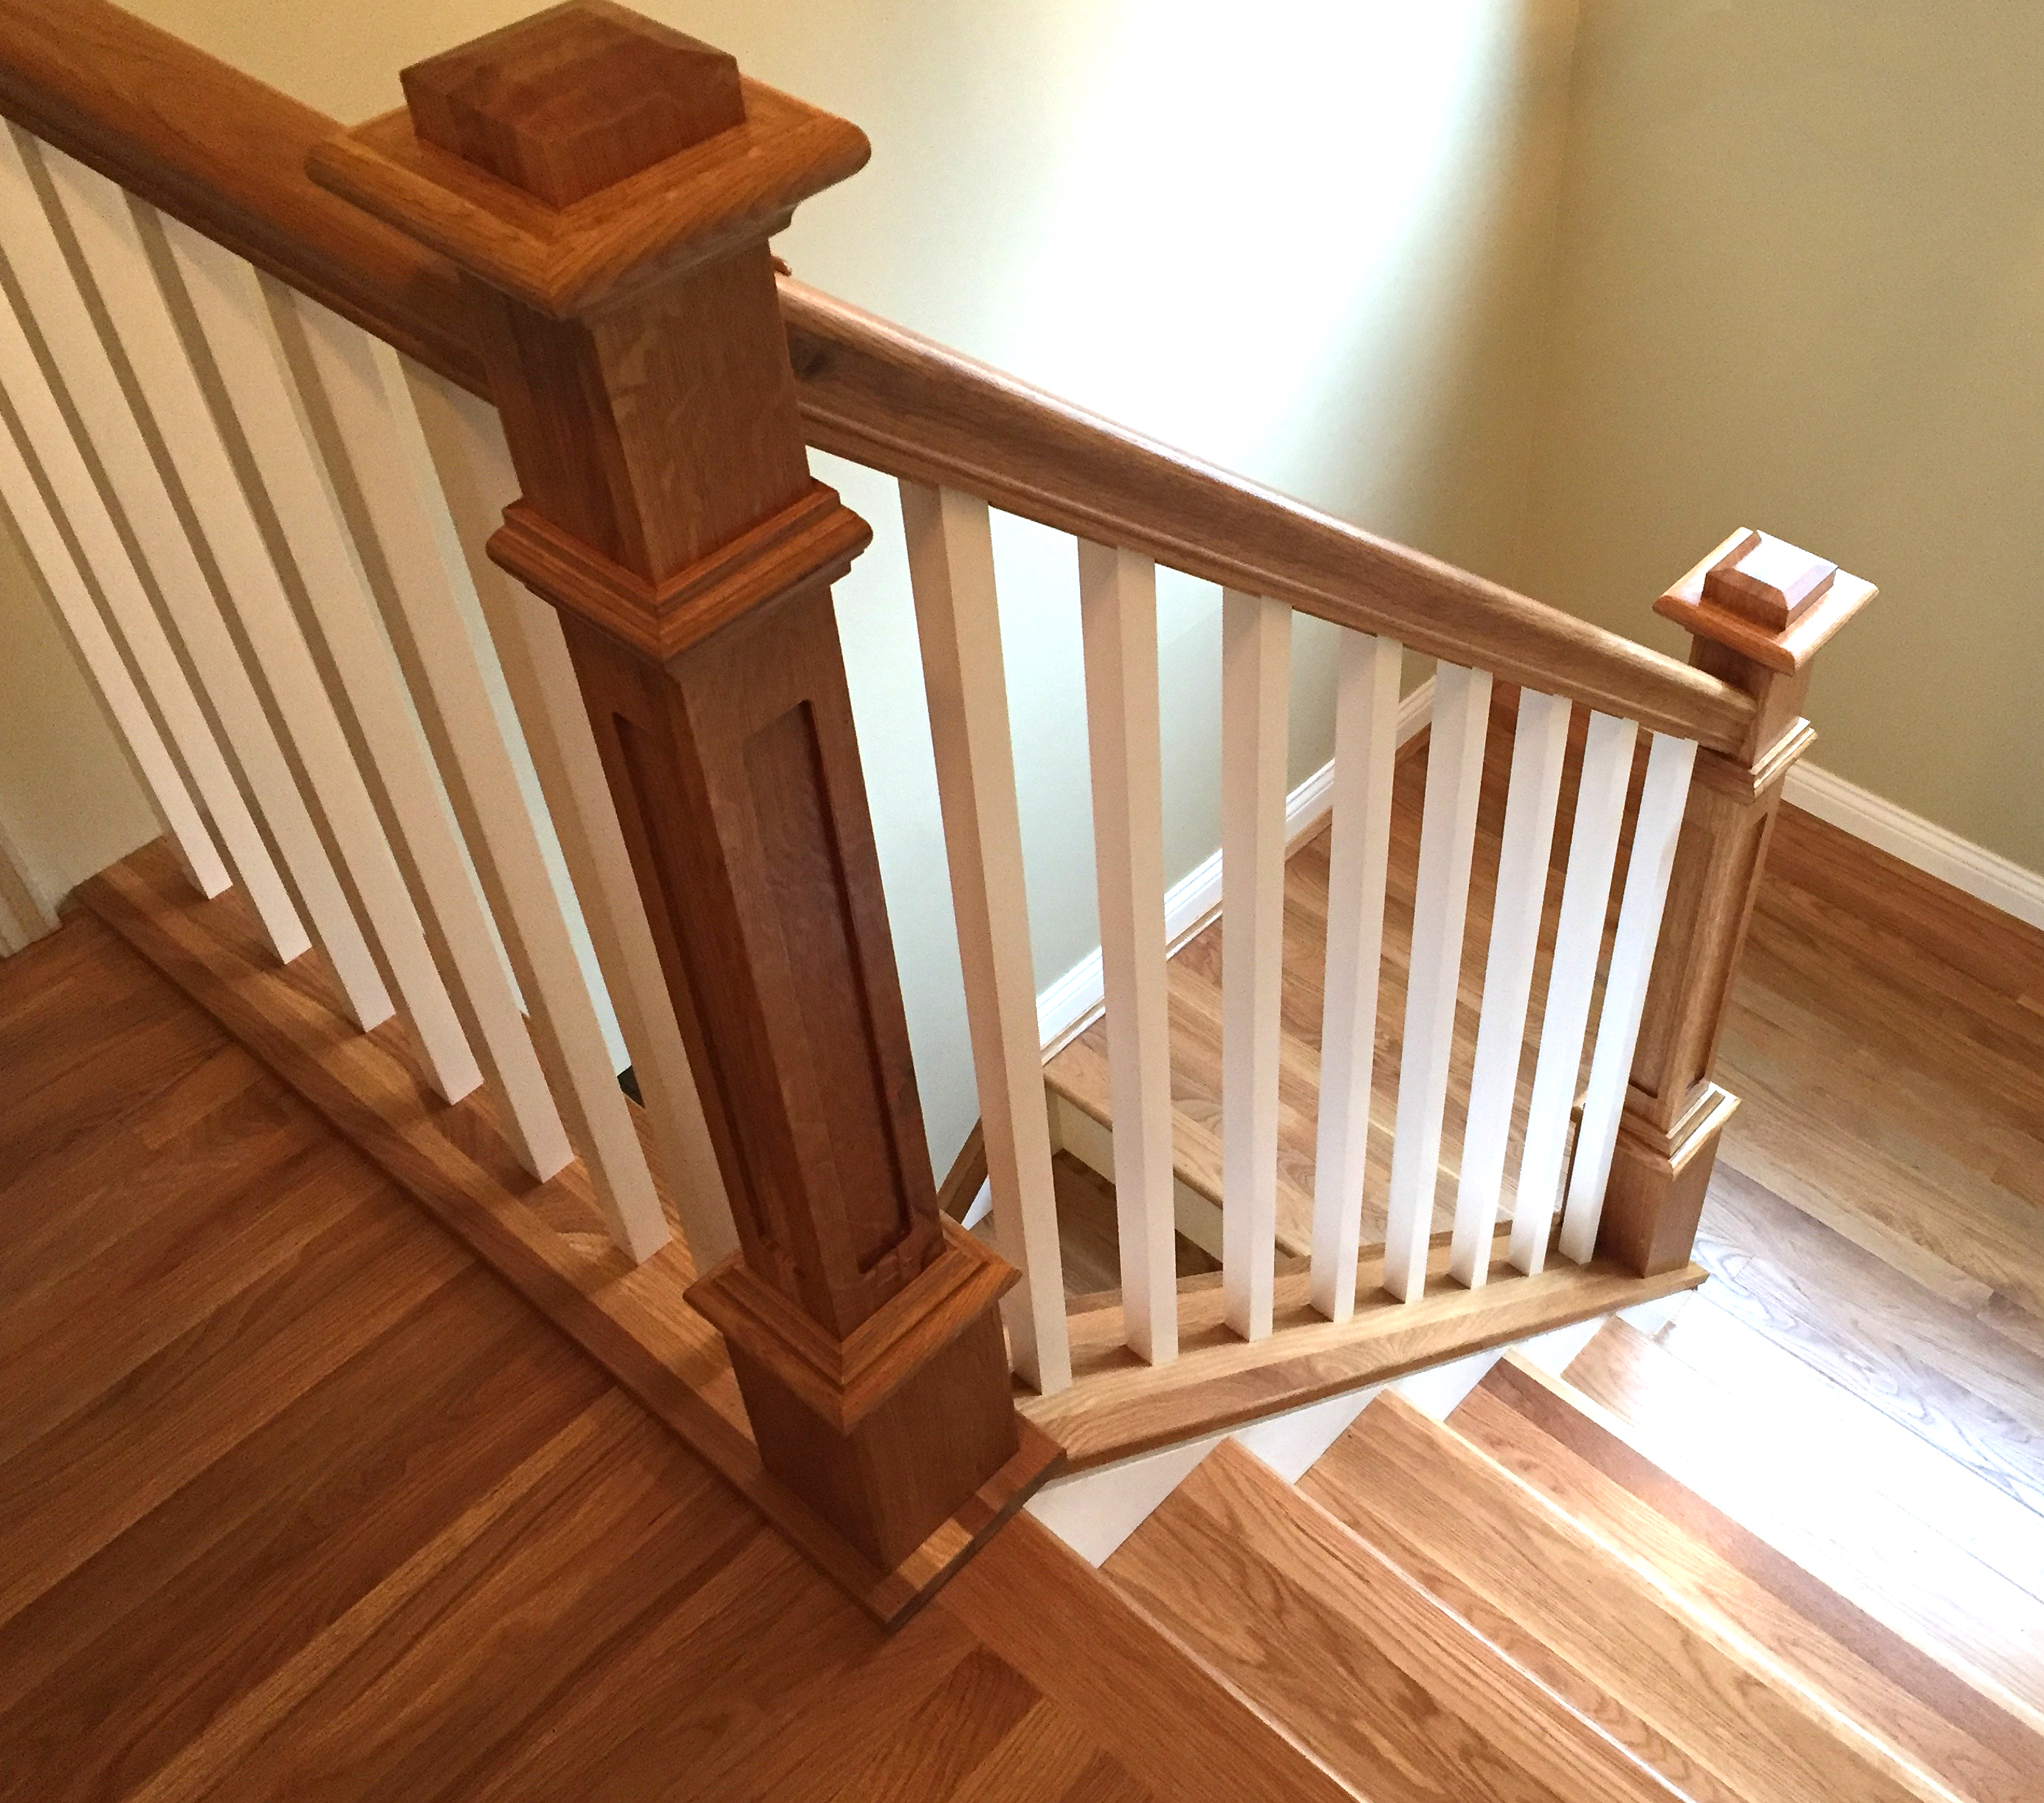 Stair Railing Kits Exterior Stair Railing Kits Outdoor